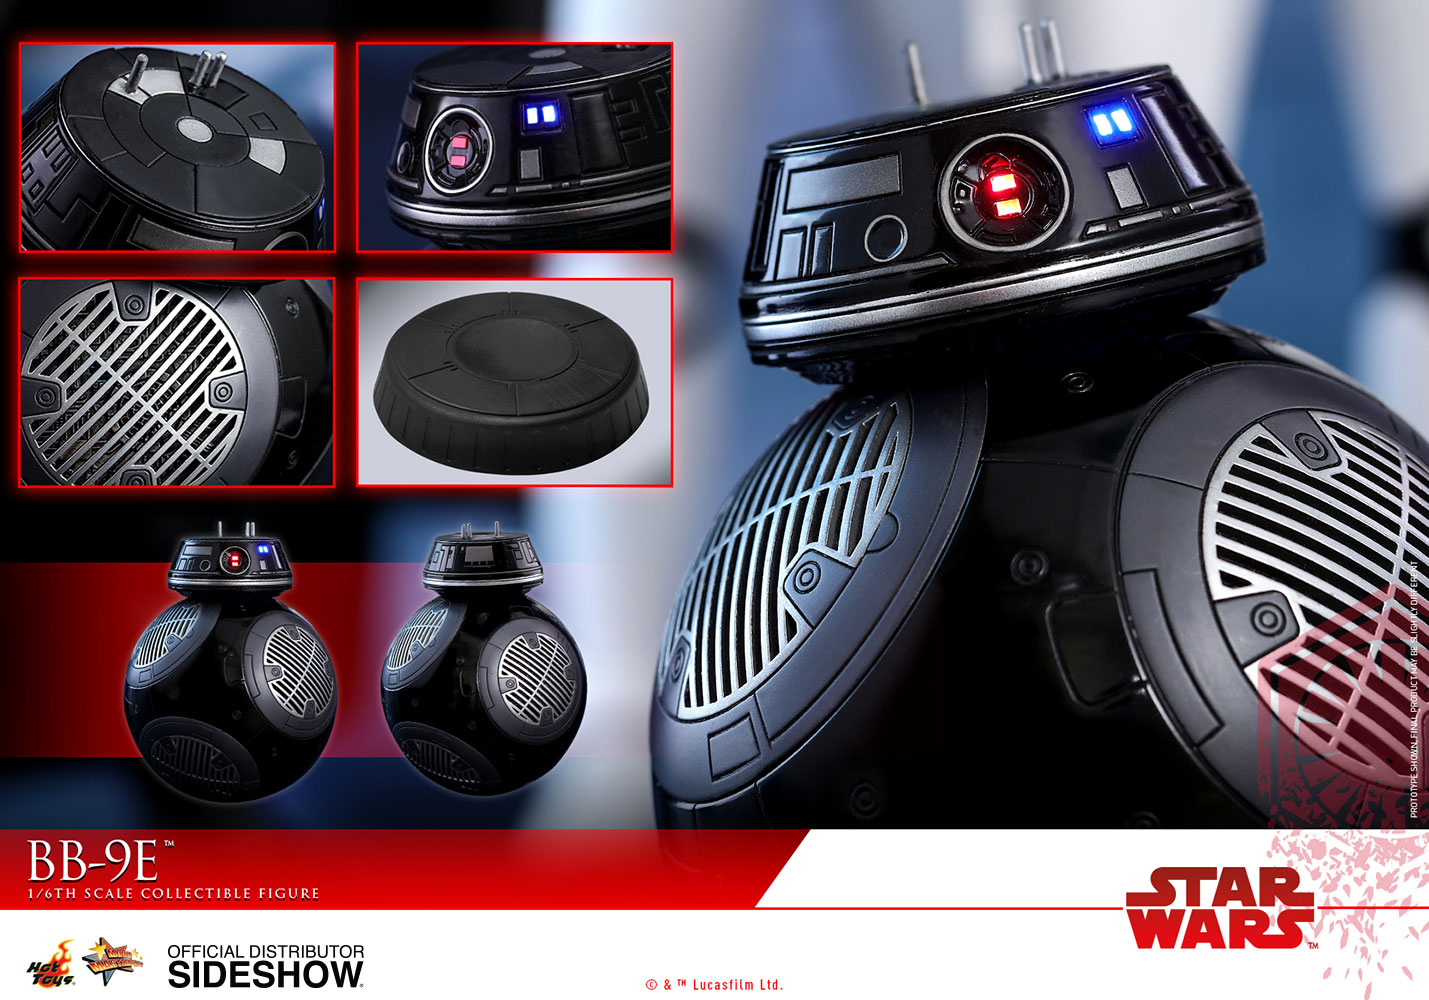 star-wars-the-last-jedi-bb-9e-sixth-scale-hot-toys-903189-13